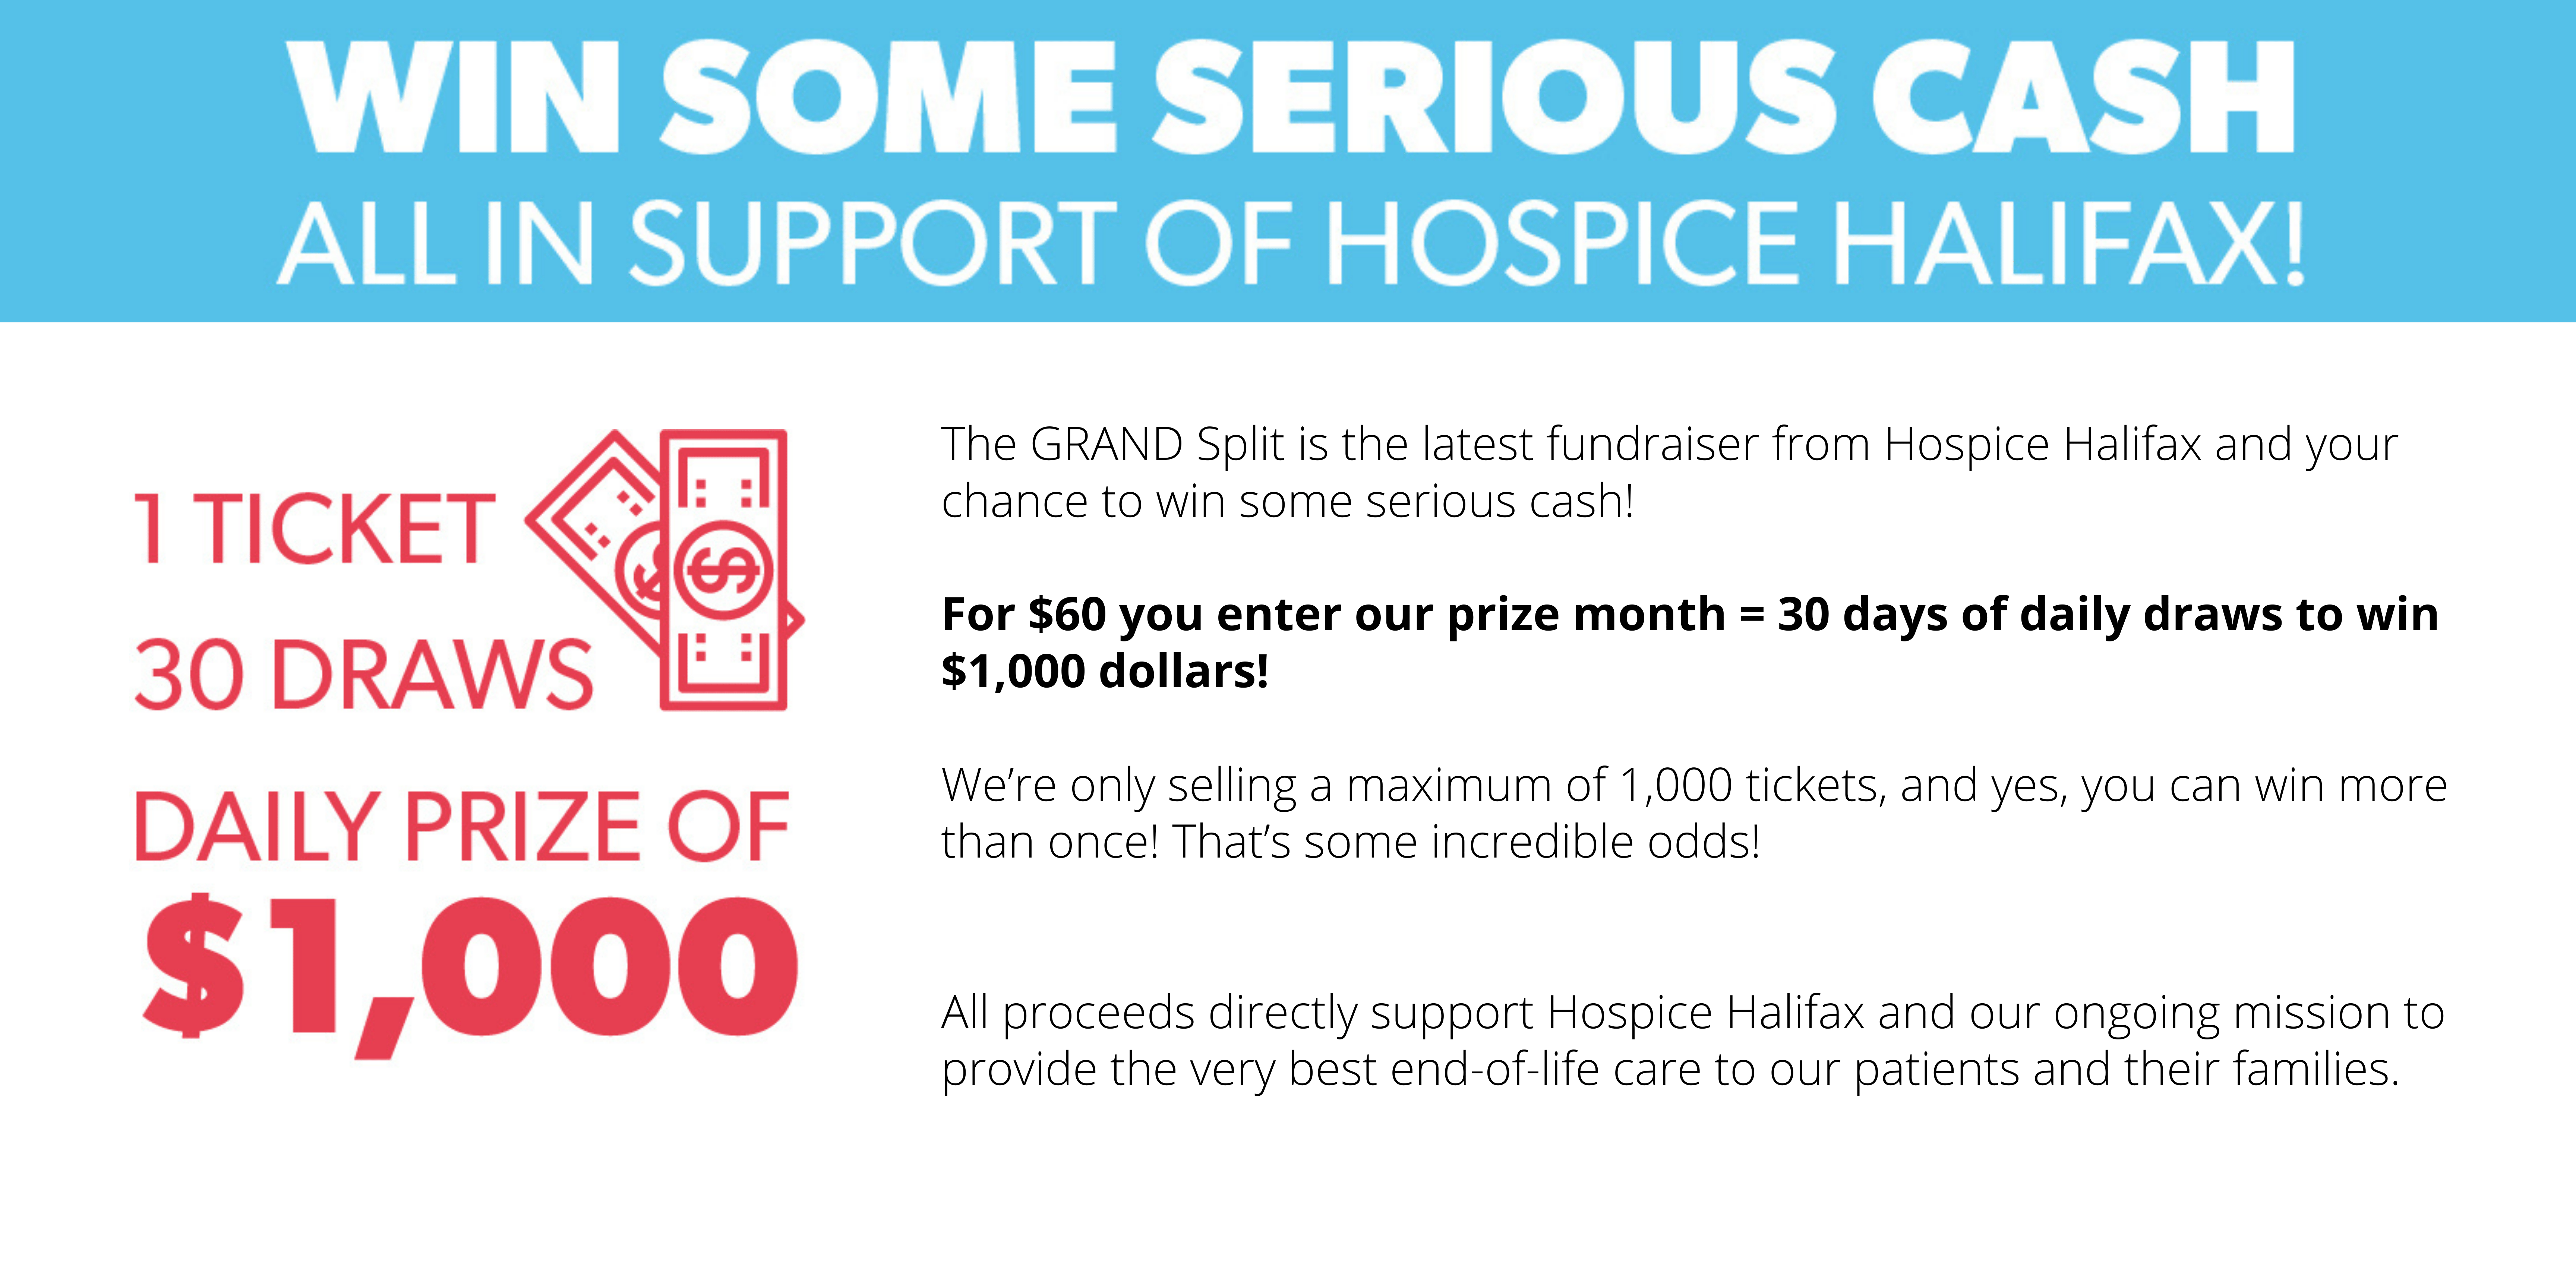 Win some serious Cash all in support of Hospice Halifax!